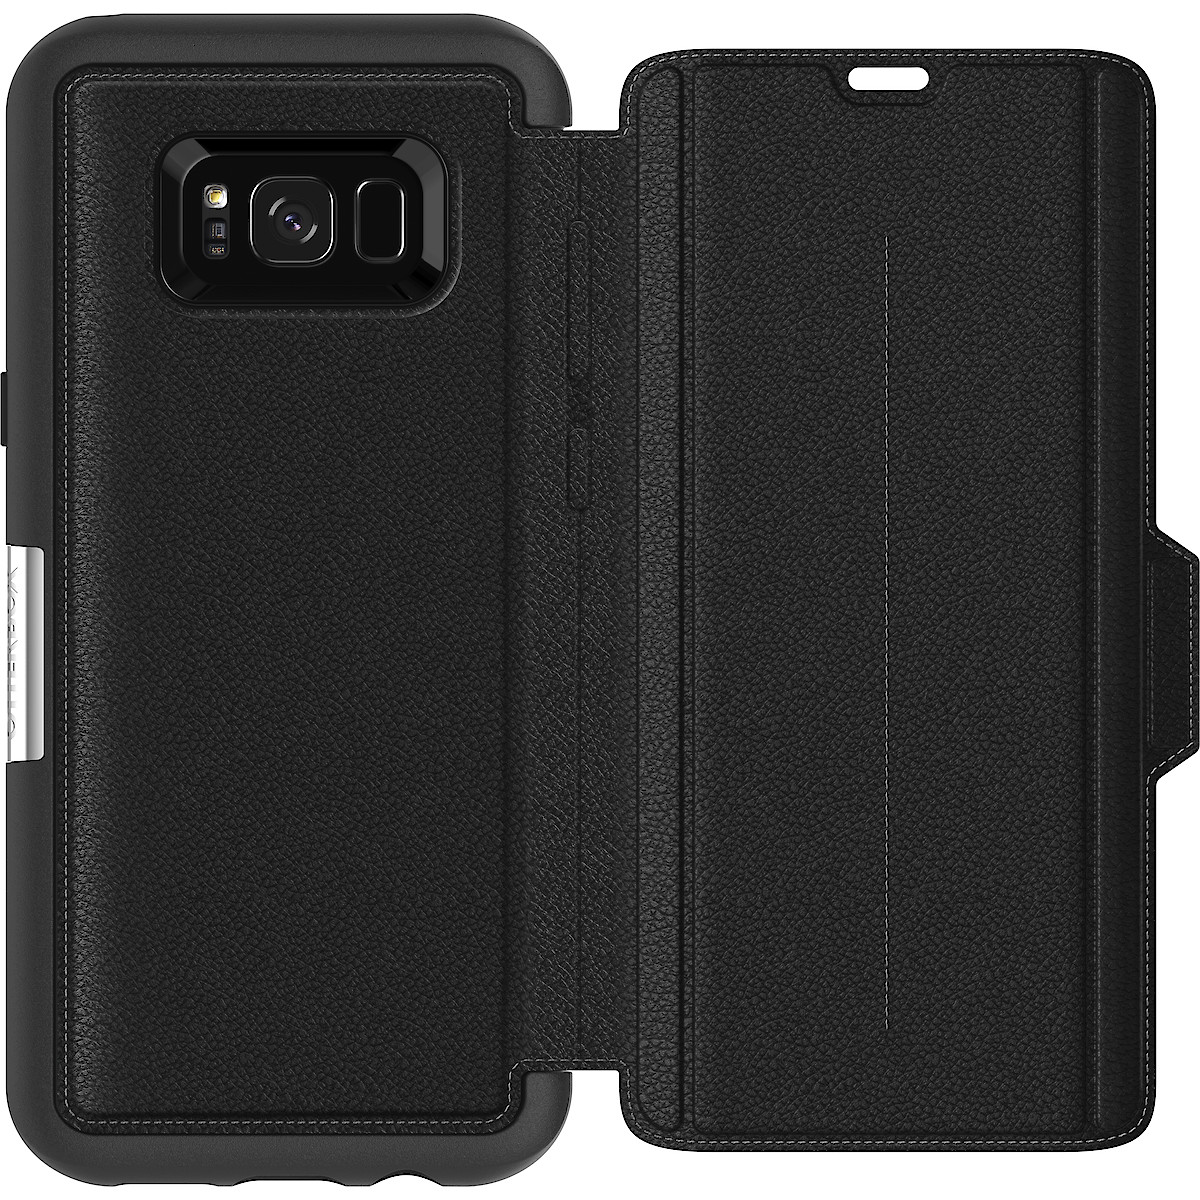 Otterbox Strada beskyttelsesdeksel for Samsung Galaxy S8